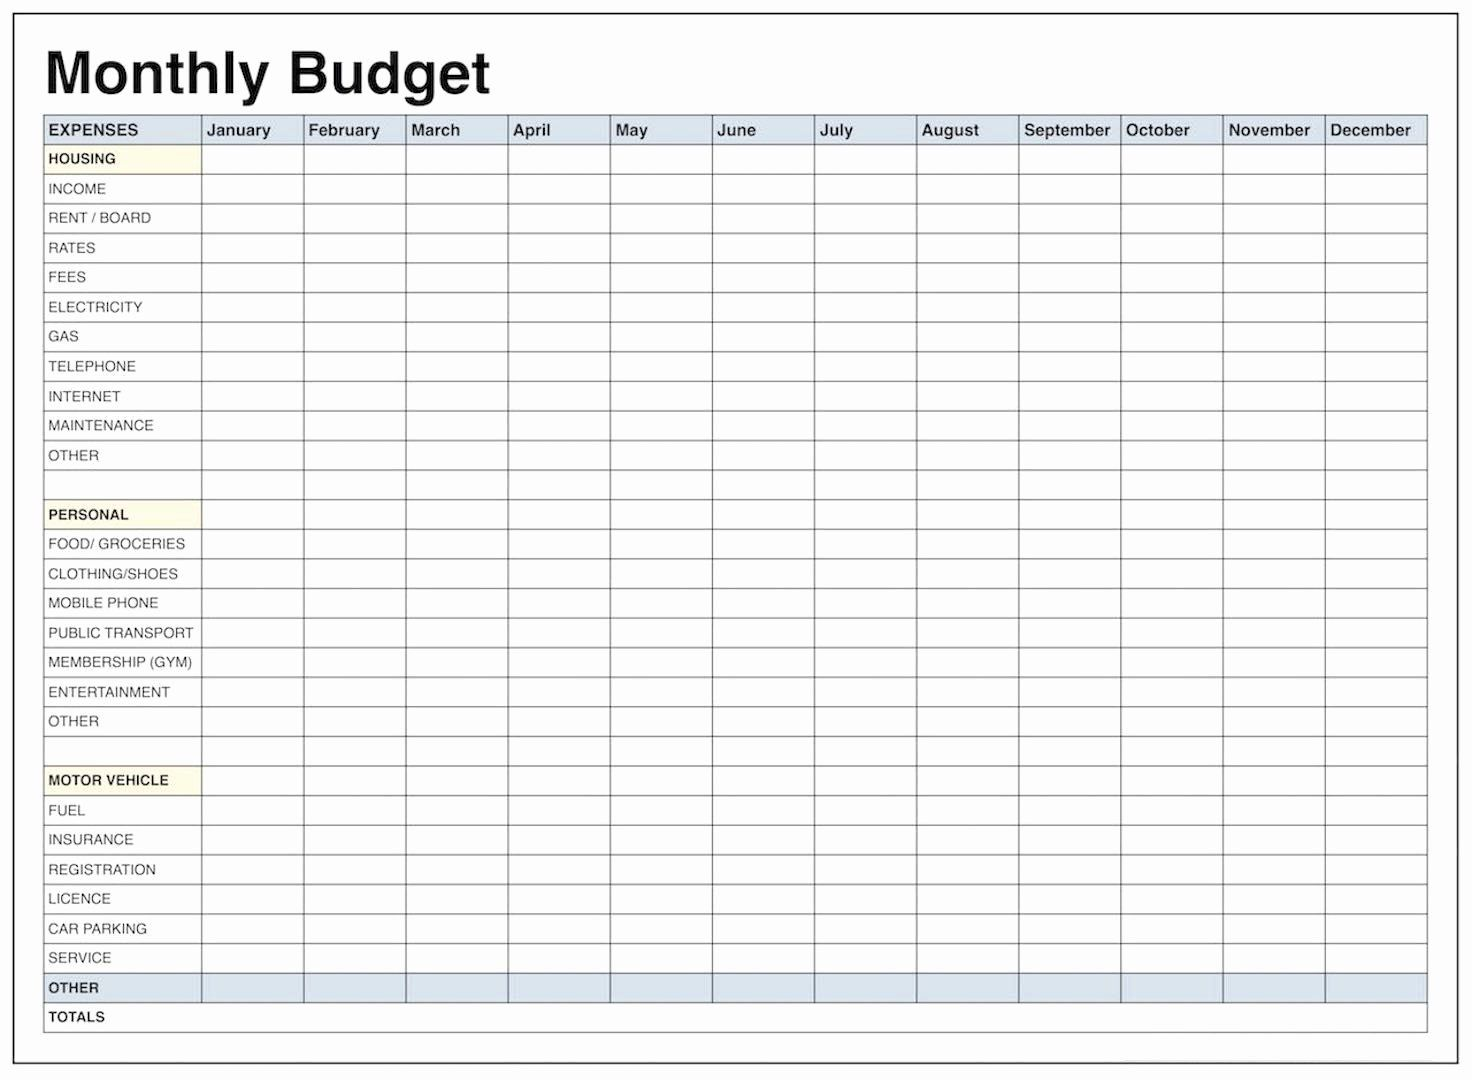 Free Printable Monthly Budget Template New Household Bud Spreadsheet L Blank Monthly Budget Spreadsheet Budget Spreadsheet Template Printable Budget Worksheet